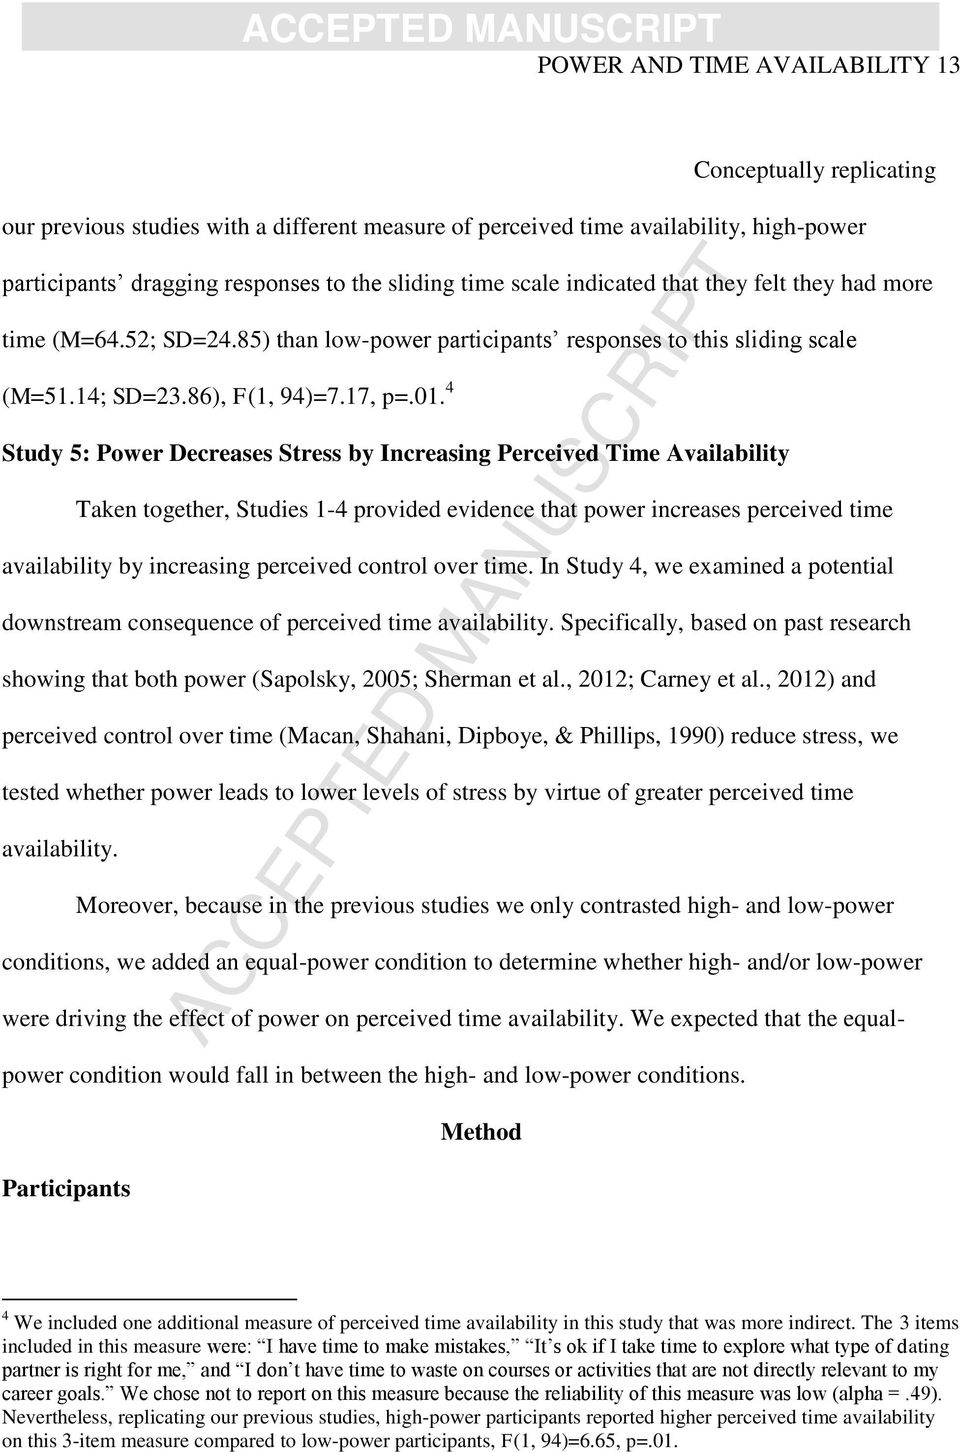 4 Study 5: Power Decreases Stress by Increasing Perceived Time Availability Taken together, Studies 1-4 provided evidence that power increases perceived time availability by increasing perceived